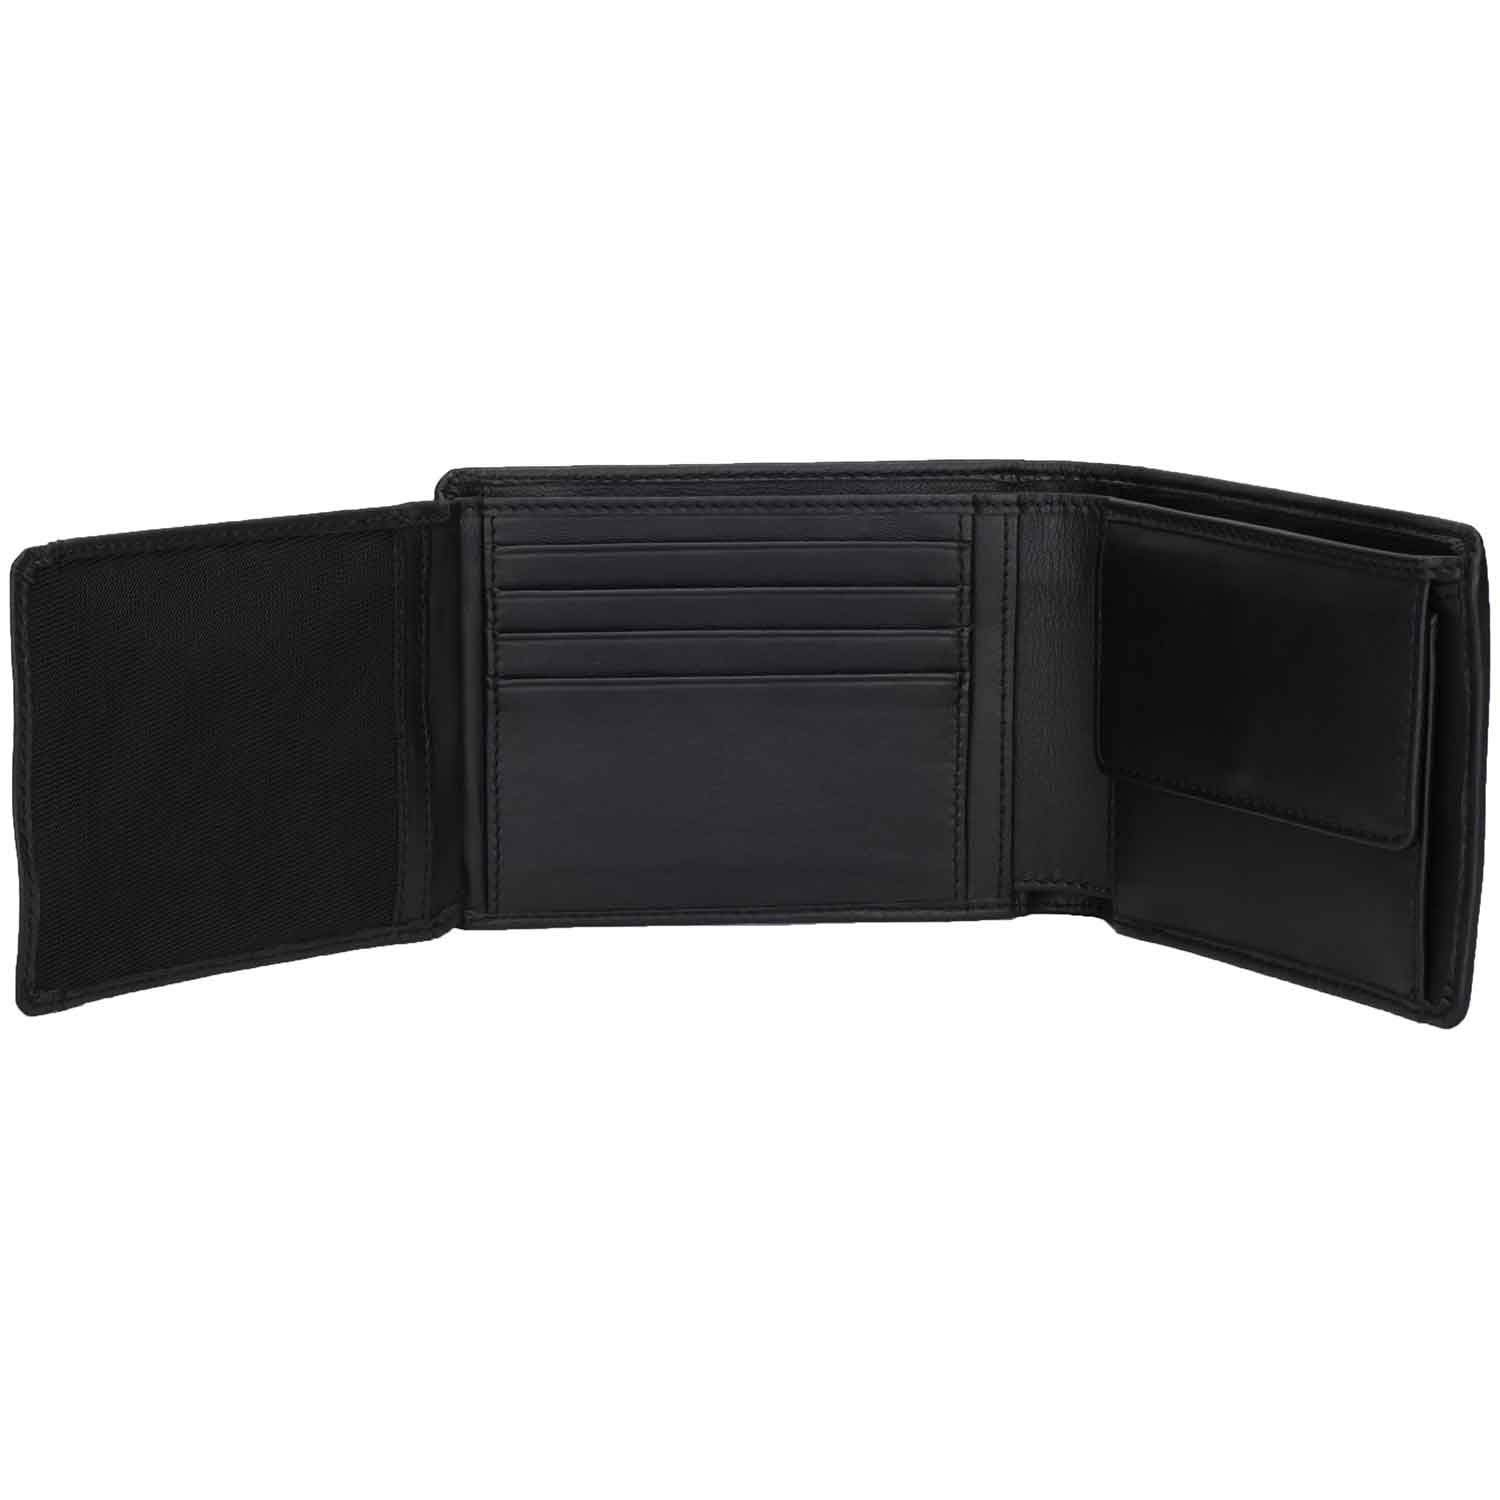 DiLoro Italy Mens Leather Wallet Bifold Flip ID Section Coin RFID Protection Full Grain Top Quality